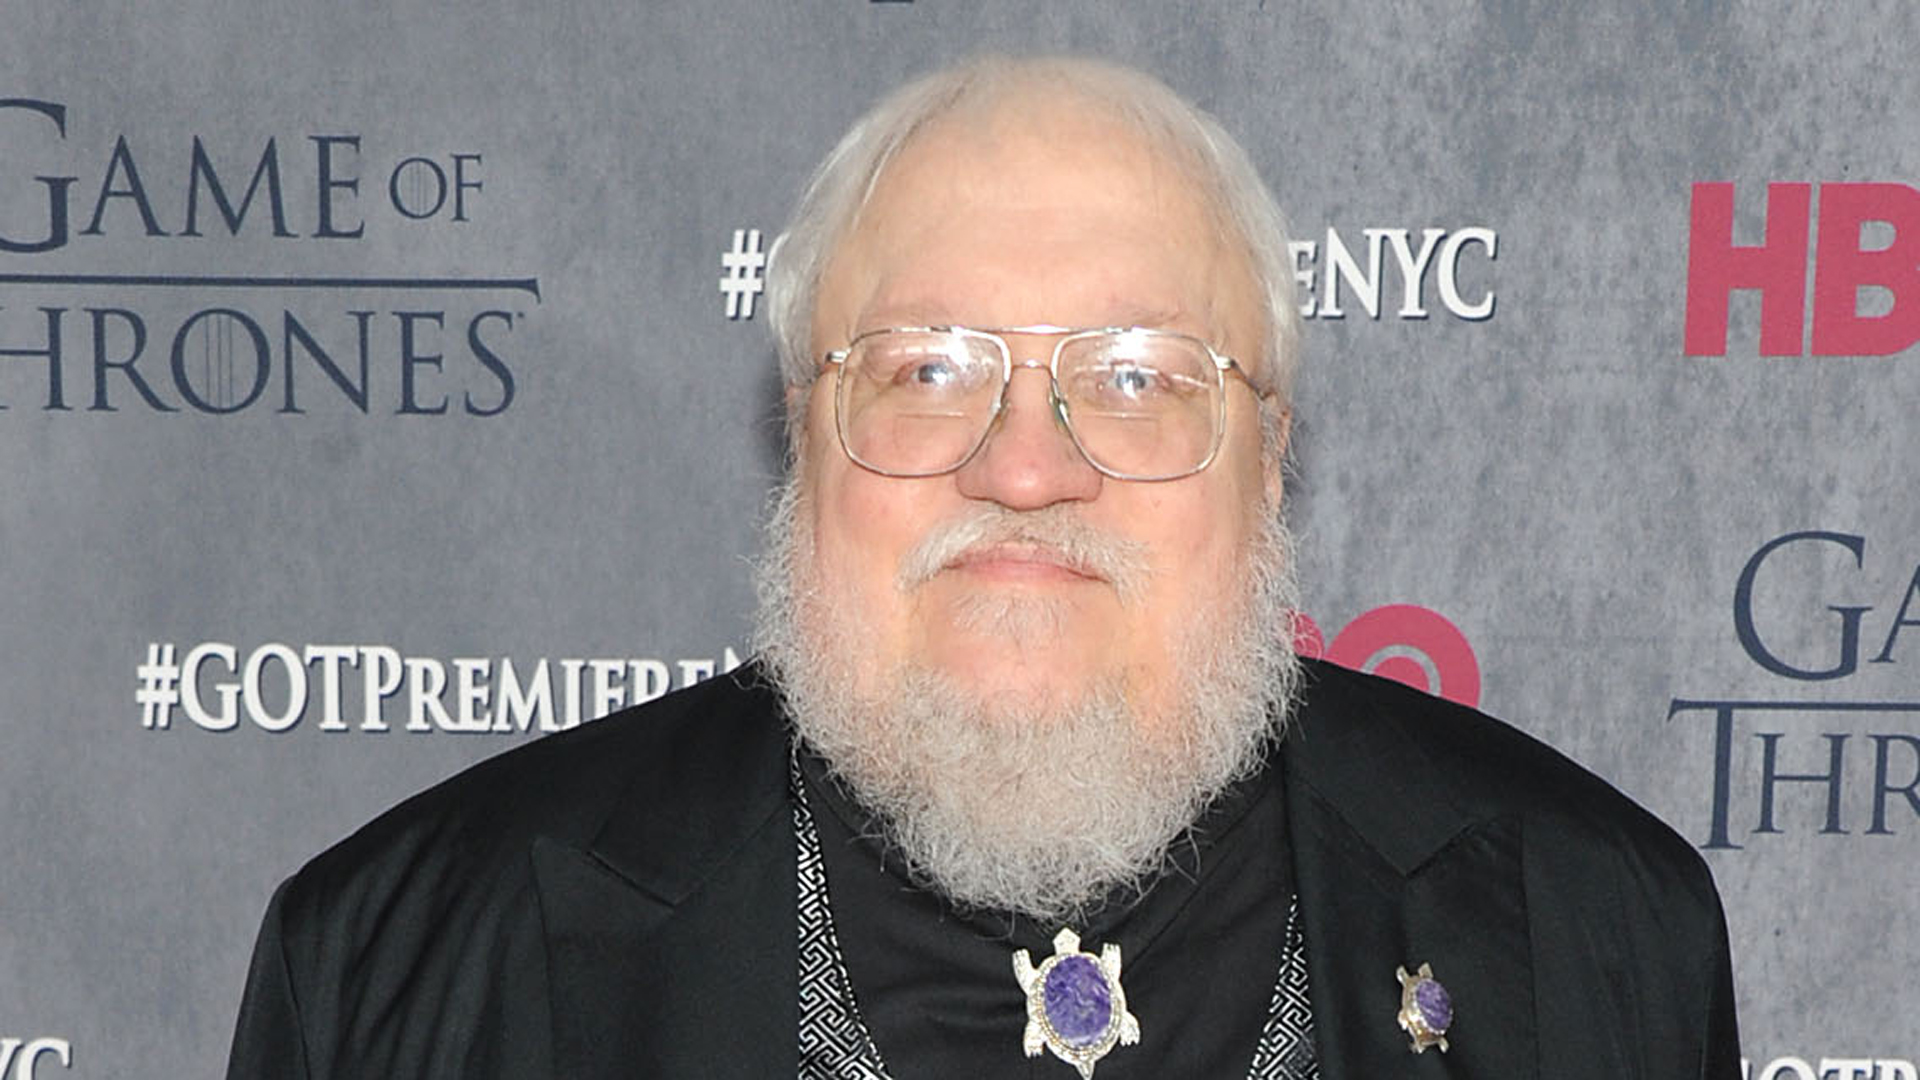 'Game of Thrones' author says new books offer 'flexibility for killing' characters